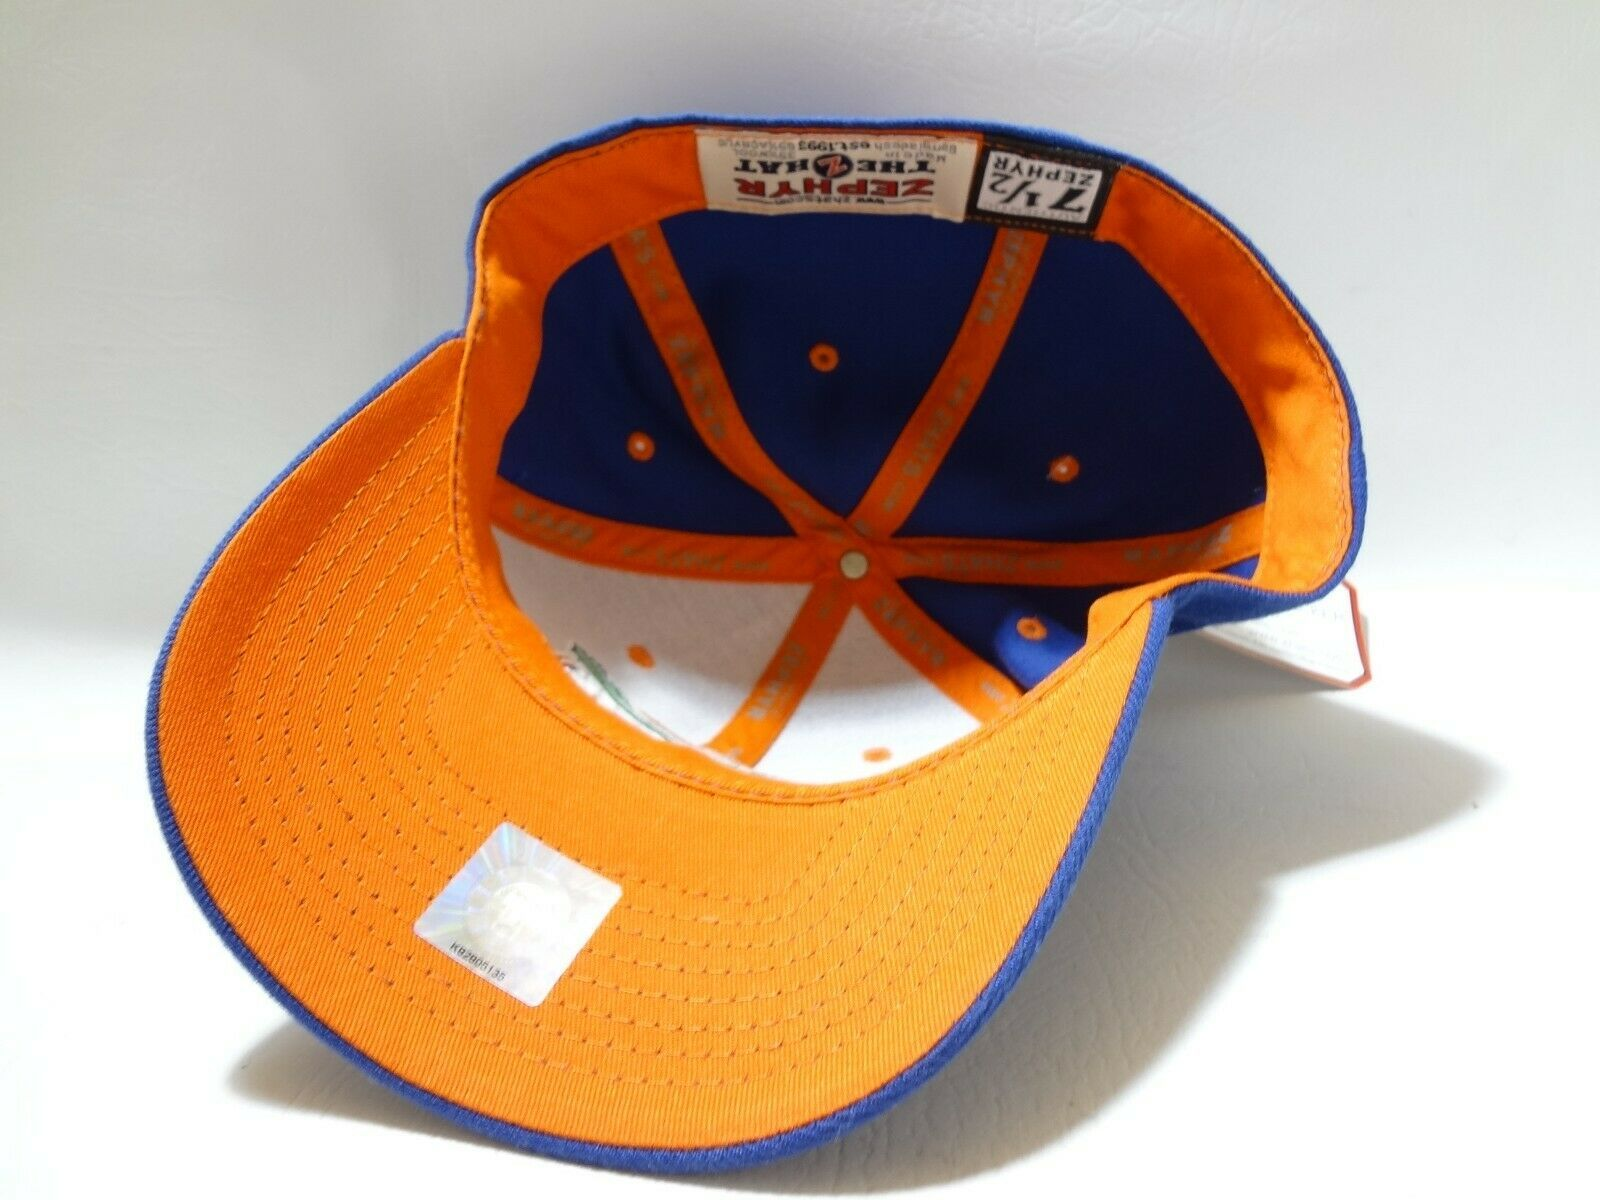 New University Of Florida UF Zephyr Fitted Cap Hat 7 1/2 Z brand College  image 9